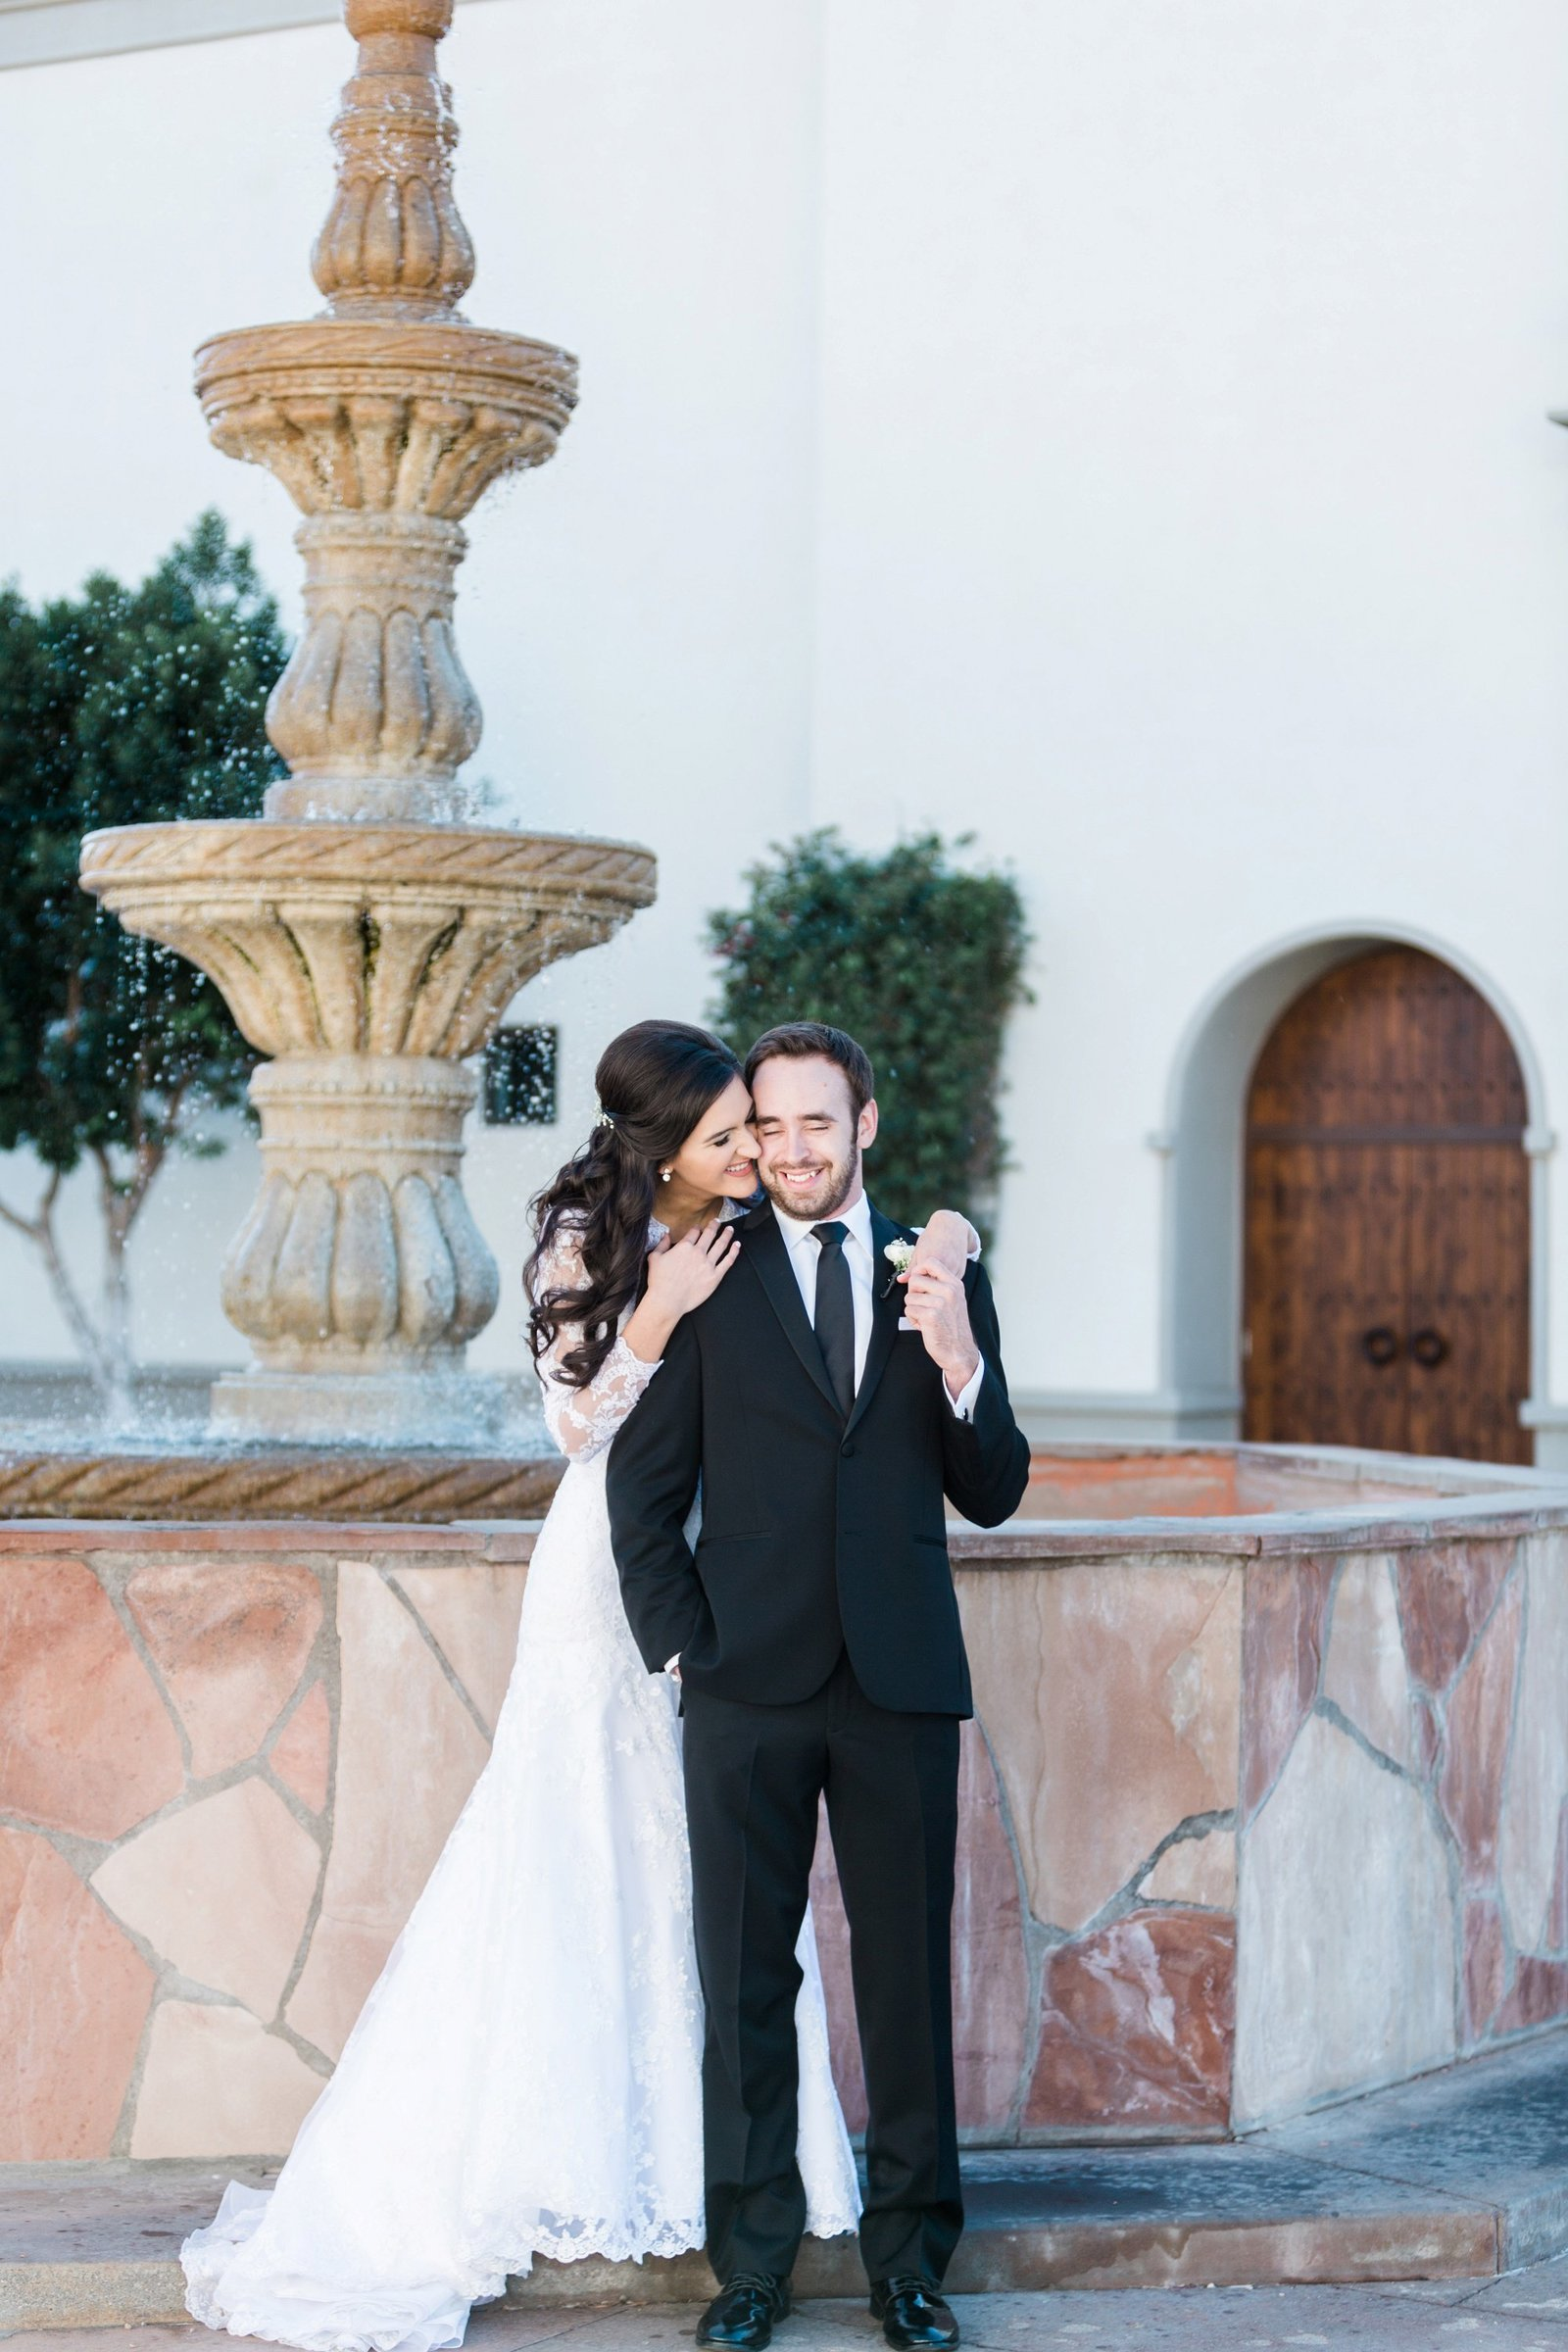 Bride + Groom Portraits Denver Colorado Springs CO Wedding Photographer Genevieve Hansen 032